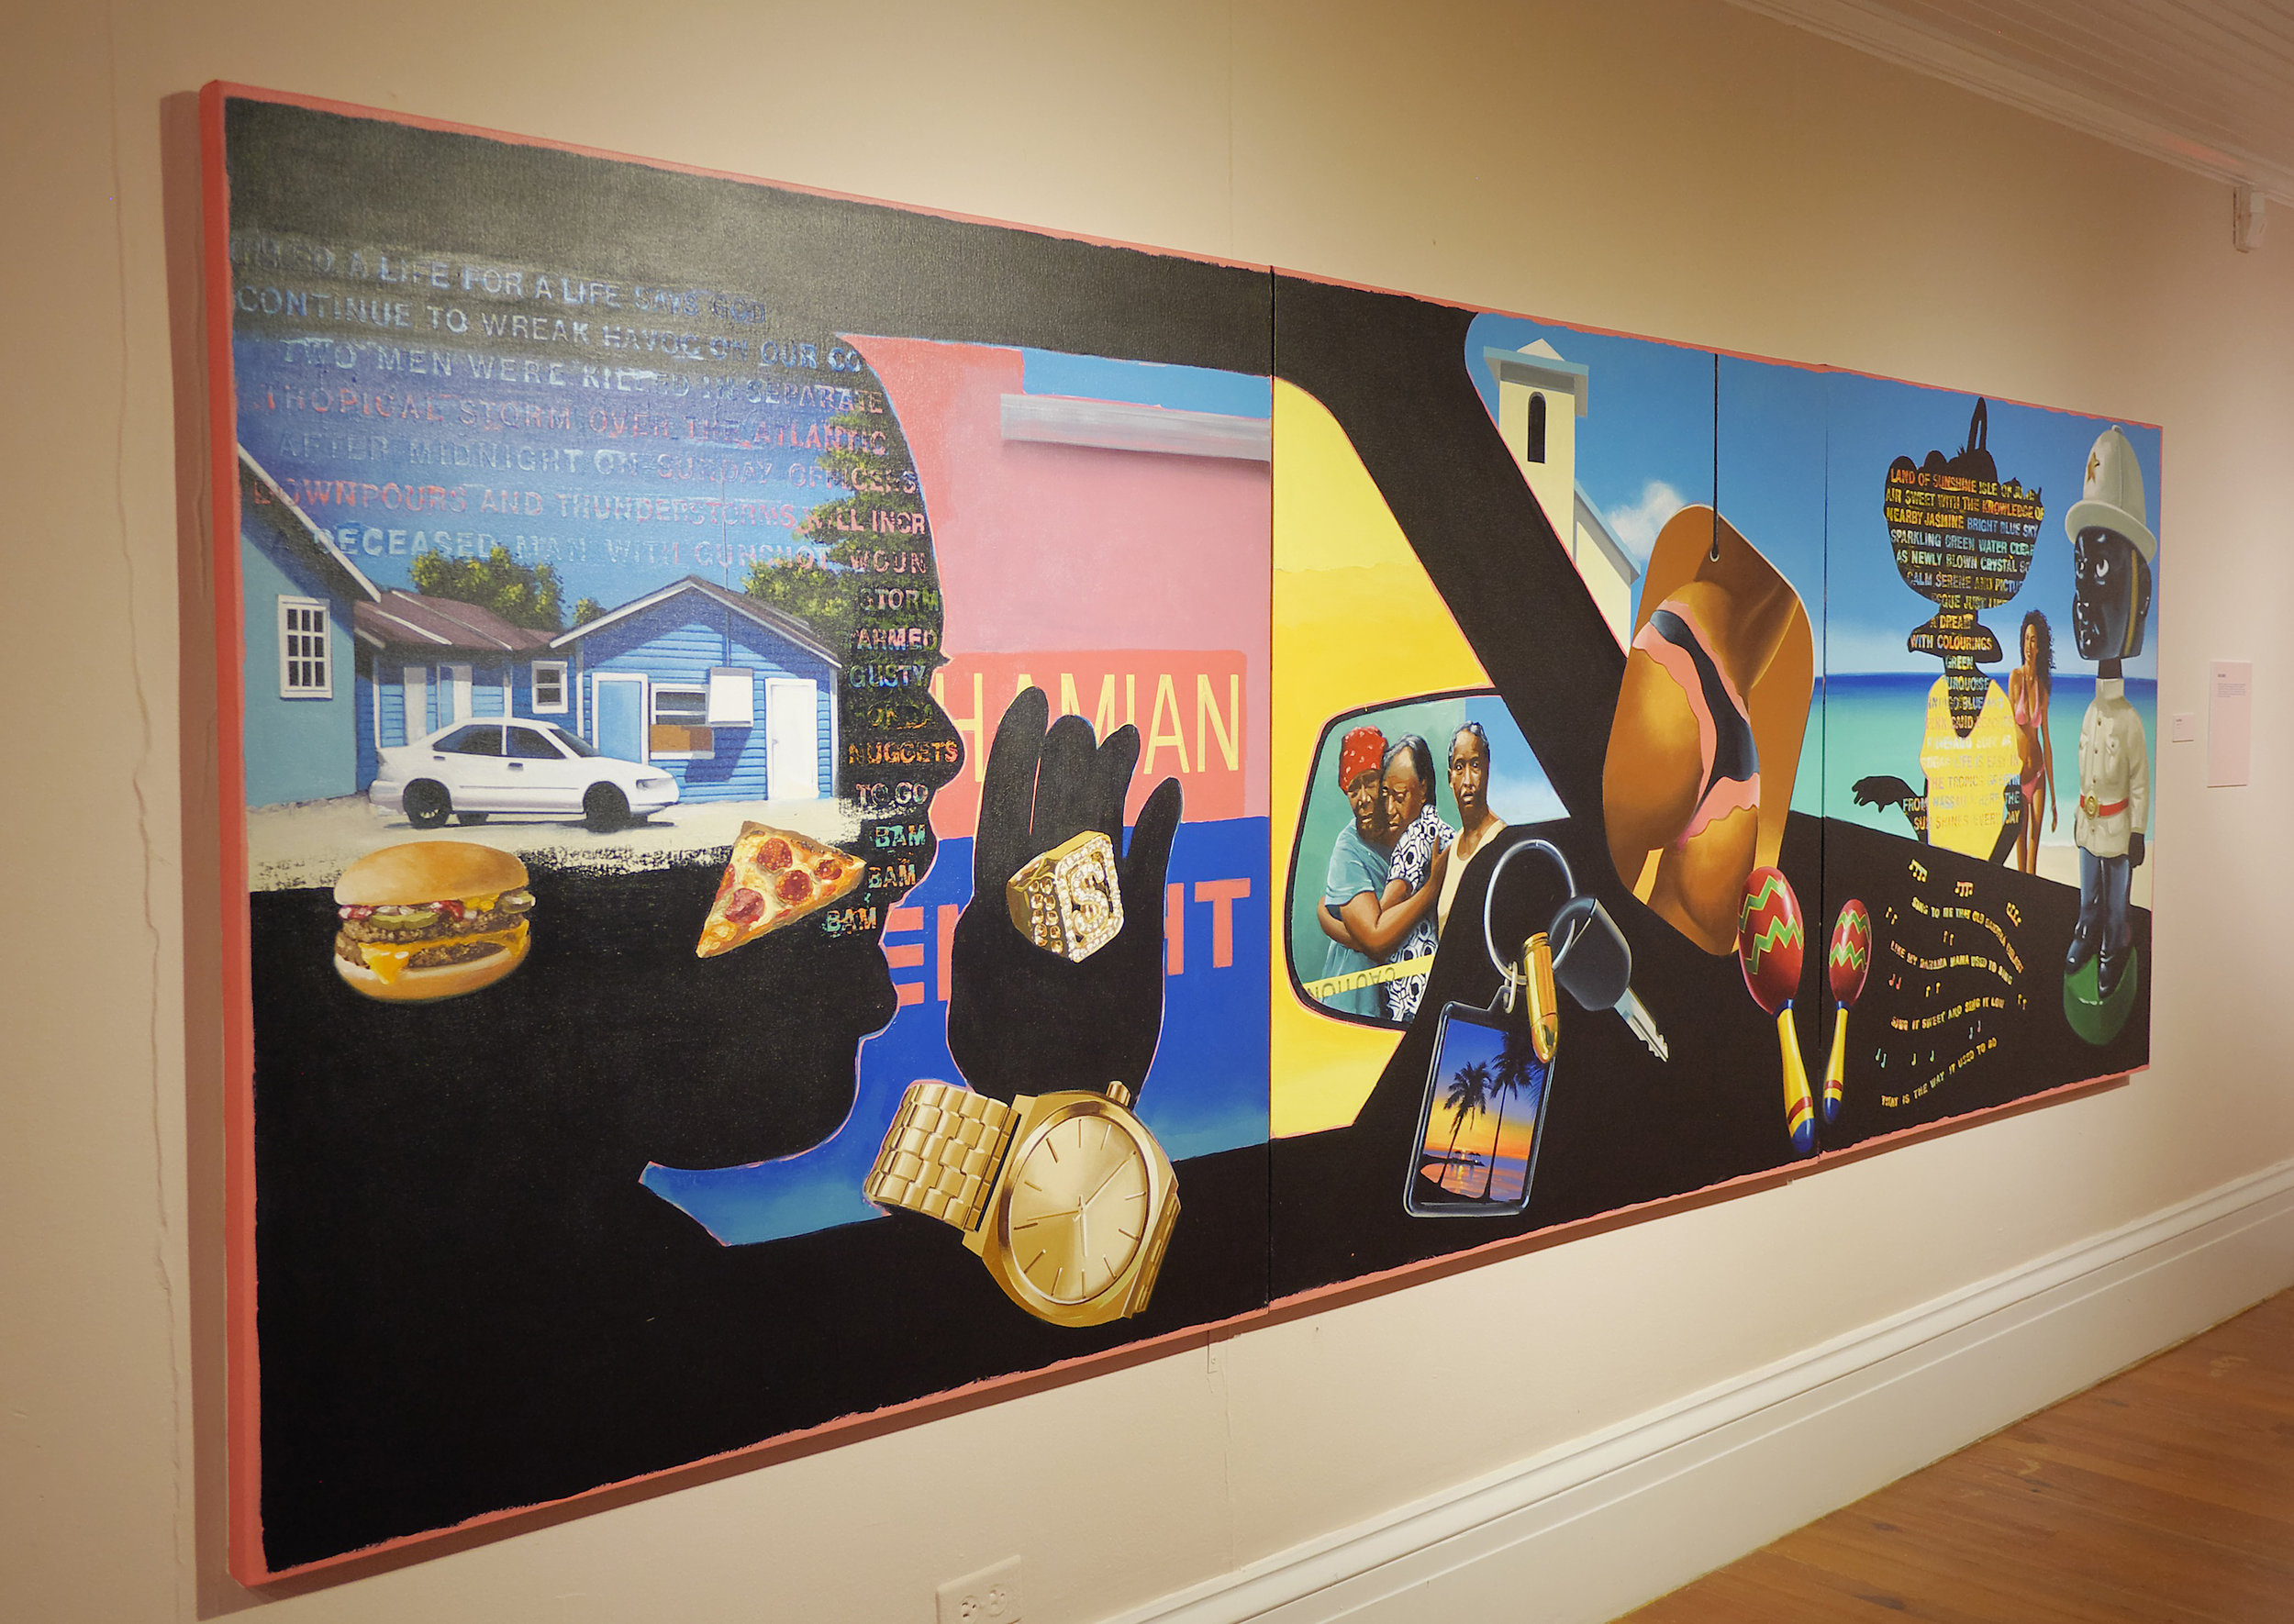 """Dave Smith. """"Passin thru."""" Acrylic on Canvas, 48"""" x 144"""", 2016. Image courtesy of the NAGB."""